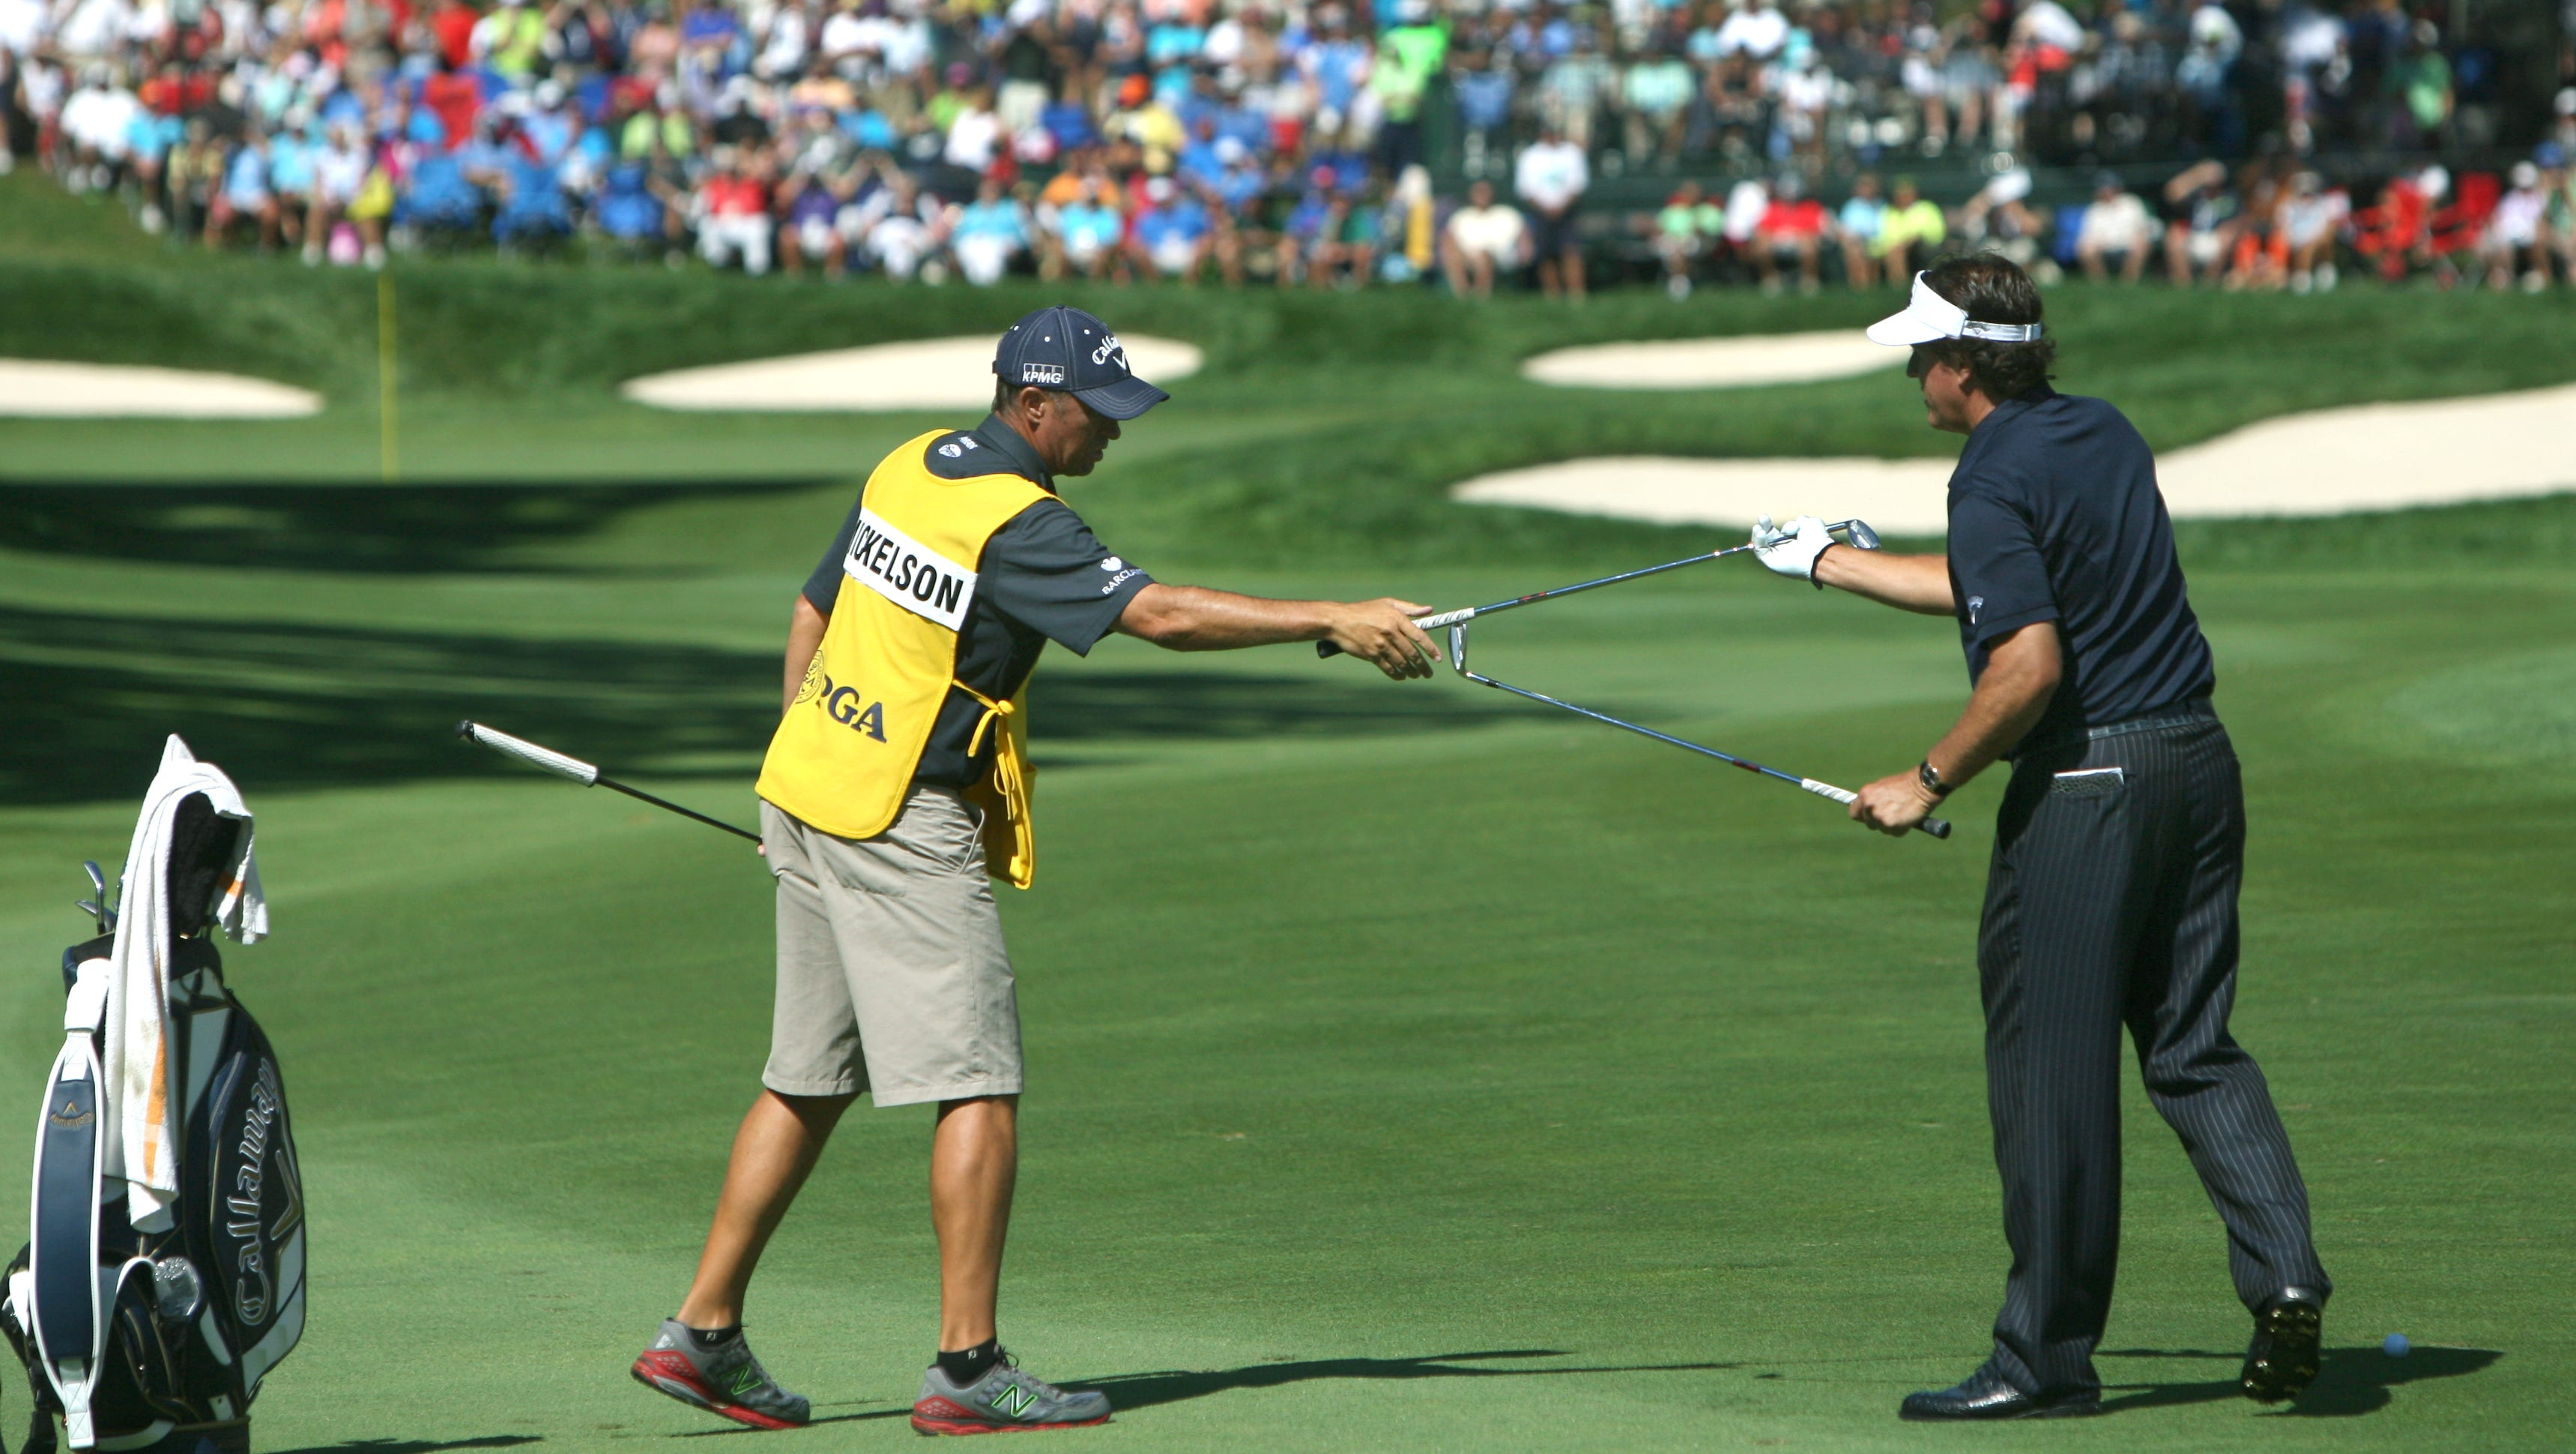 Phil Mickelson exchanges clubs with his caddie before swinging towards the green on 13.